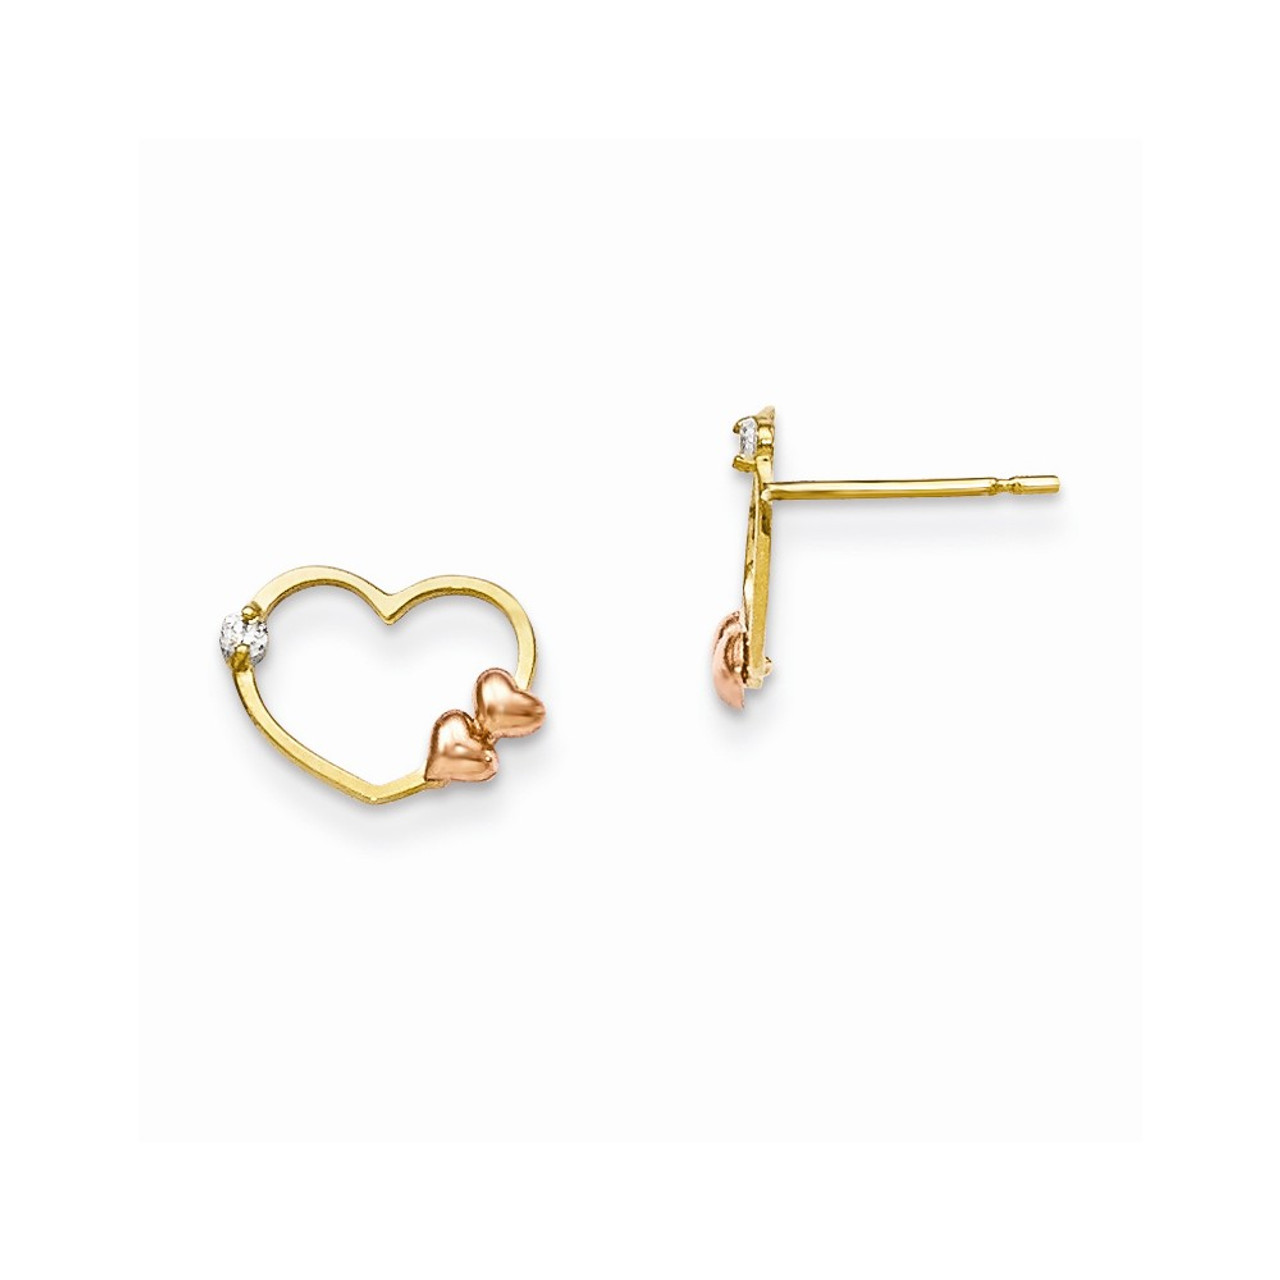 14K Rose And Yellow Gold Madi K Childrens 5 MM Heart Post Stud Earrings